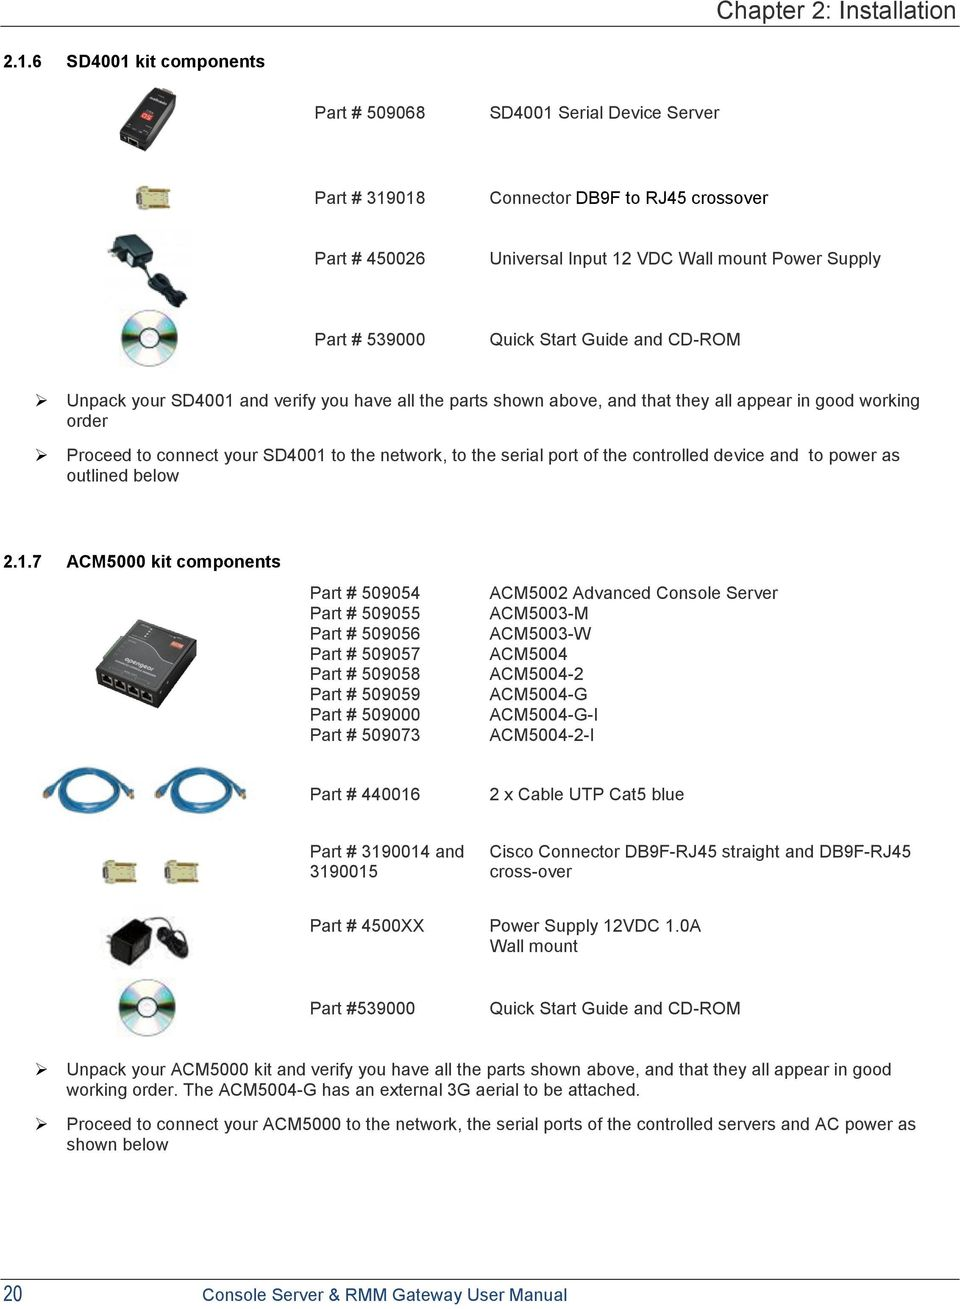 User Manual Acm5000 Acm5500 Rmm Gateways Im4000 Im4200 Usb Serial Port Cable Connection Diagram Usrobotics 56k Dialup Guide And Cd Rom Unpack Your Sd4001 Verify You Have All The Parts Shown